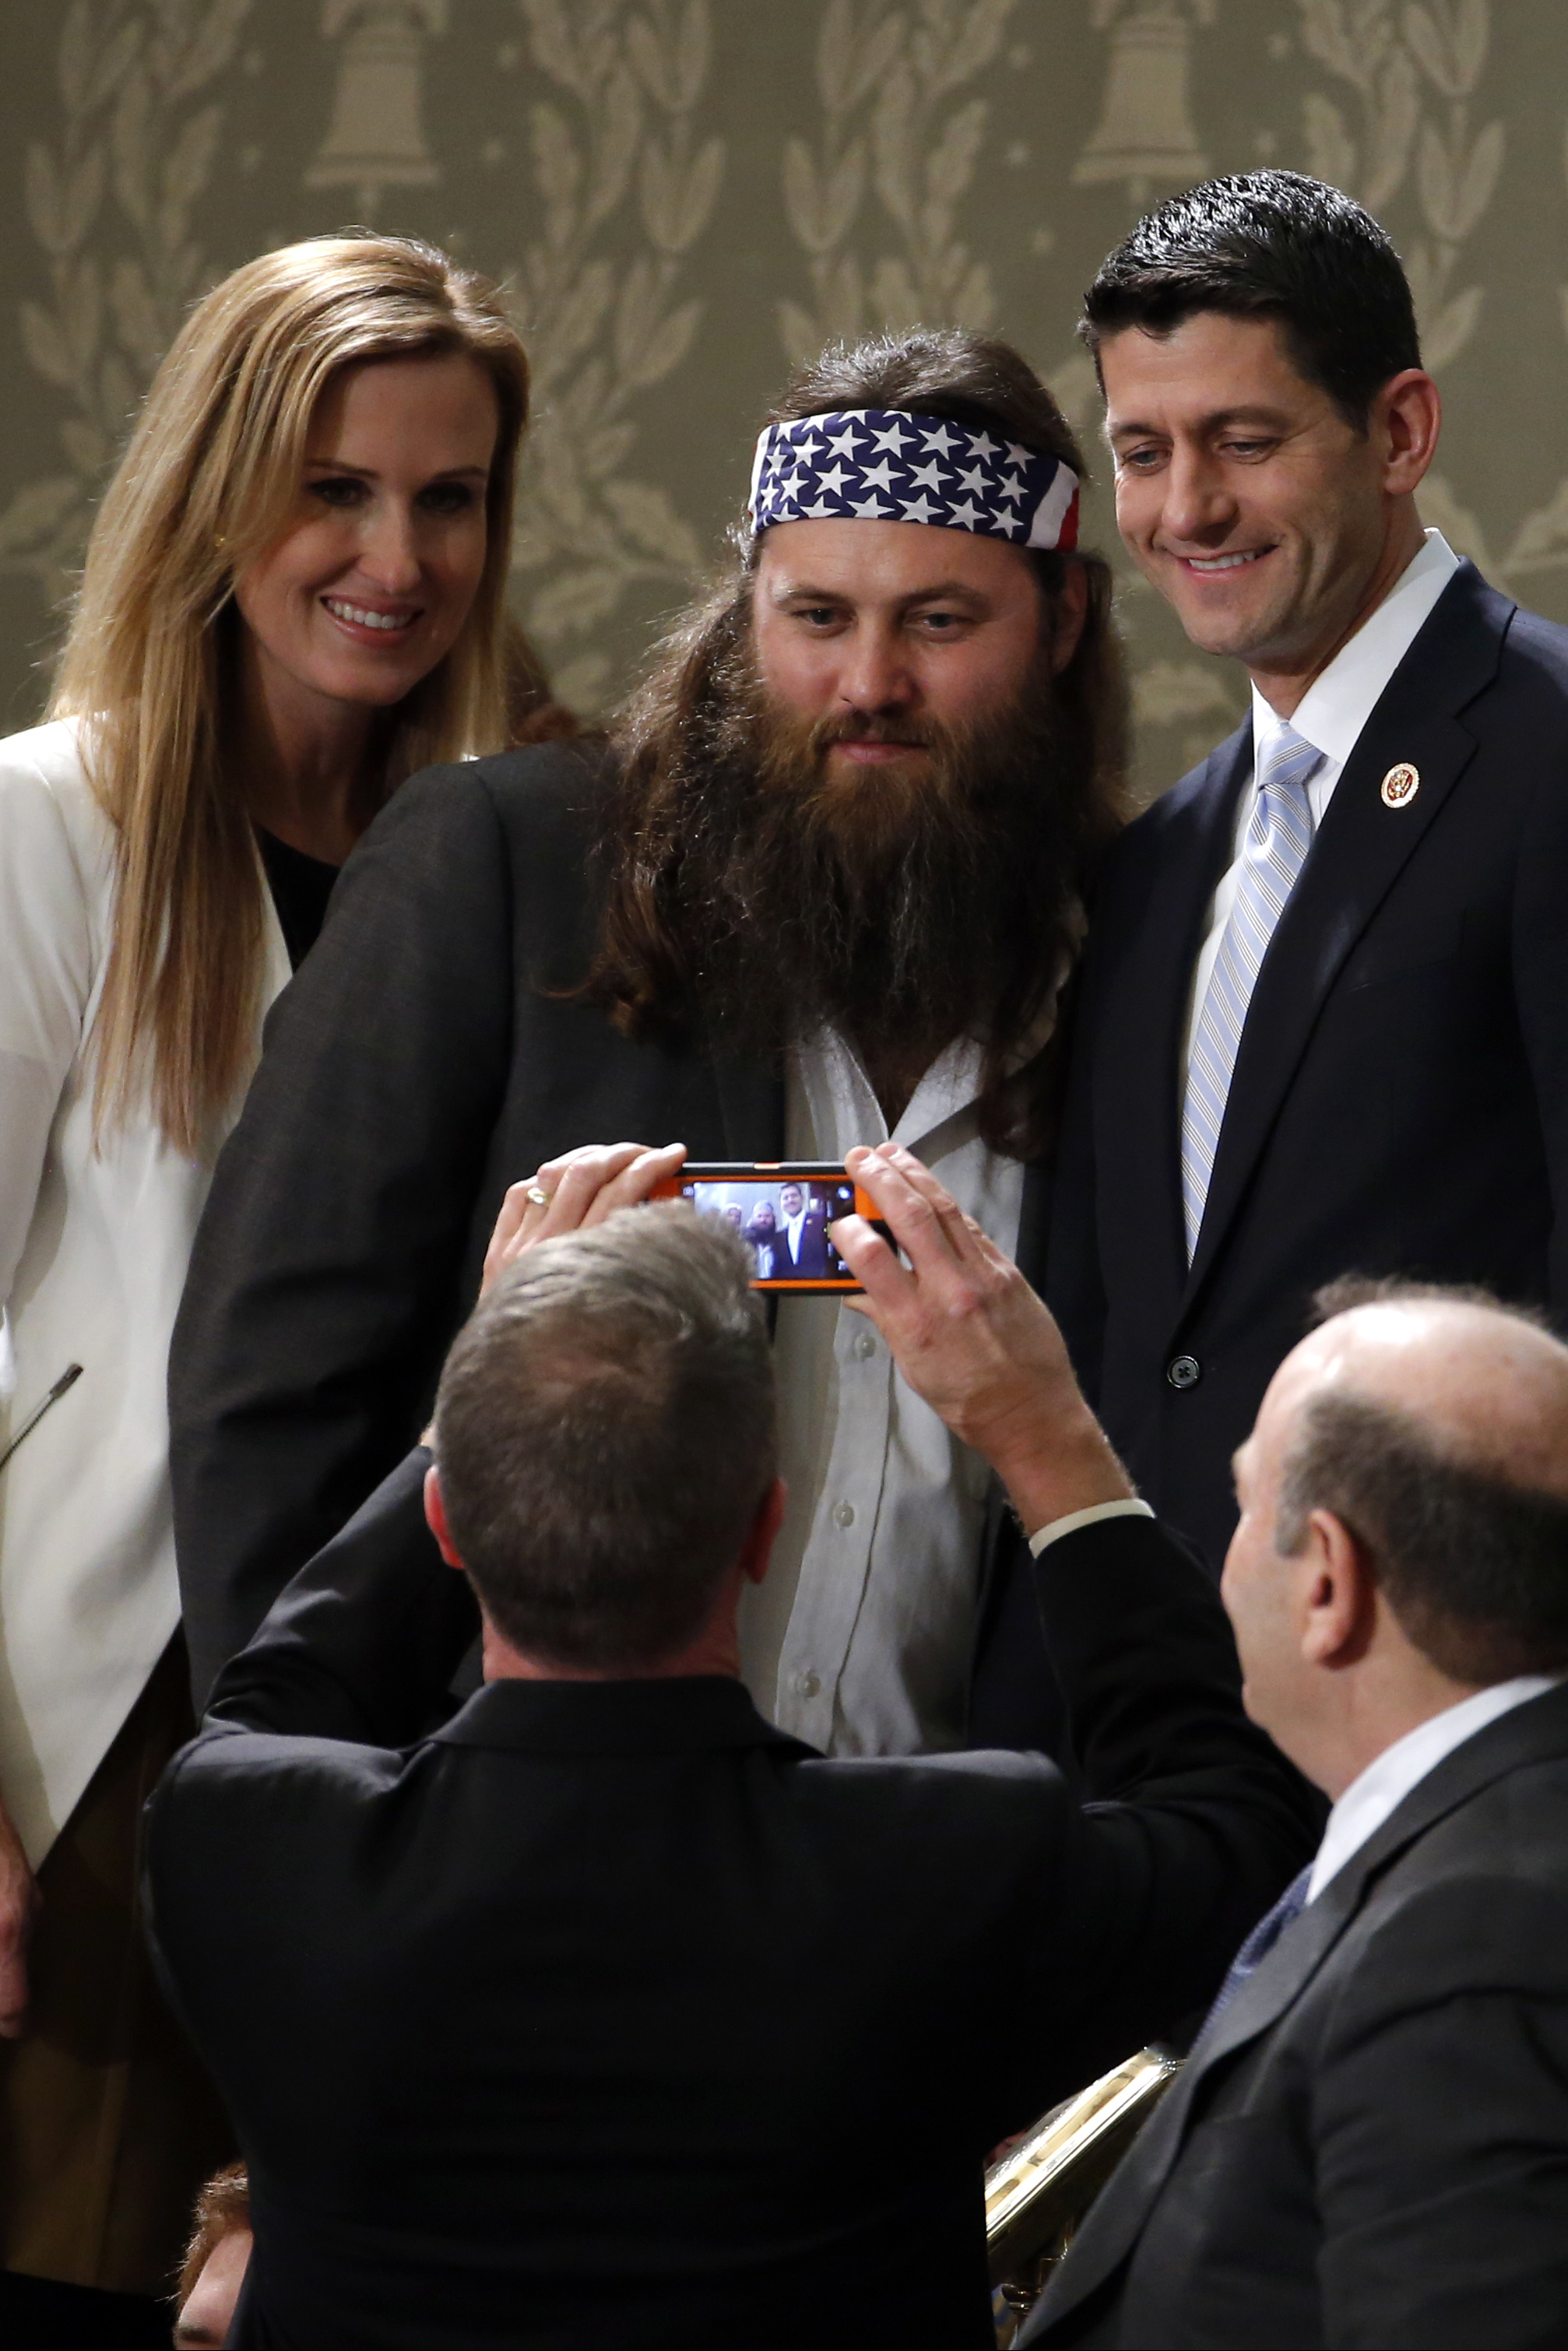 Willie Robertson State of the Union